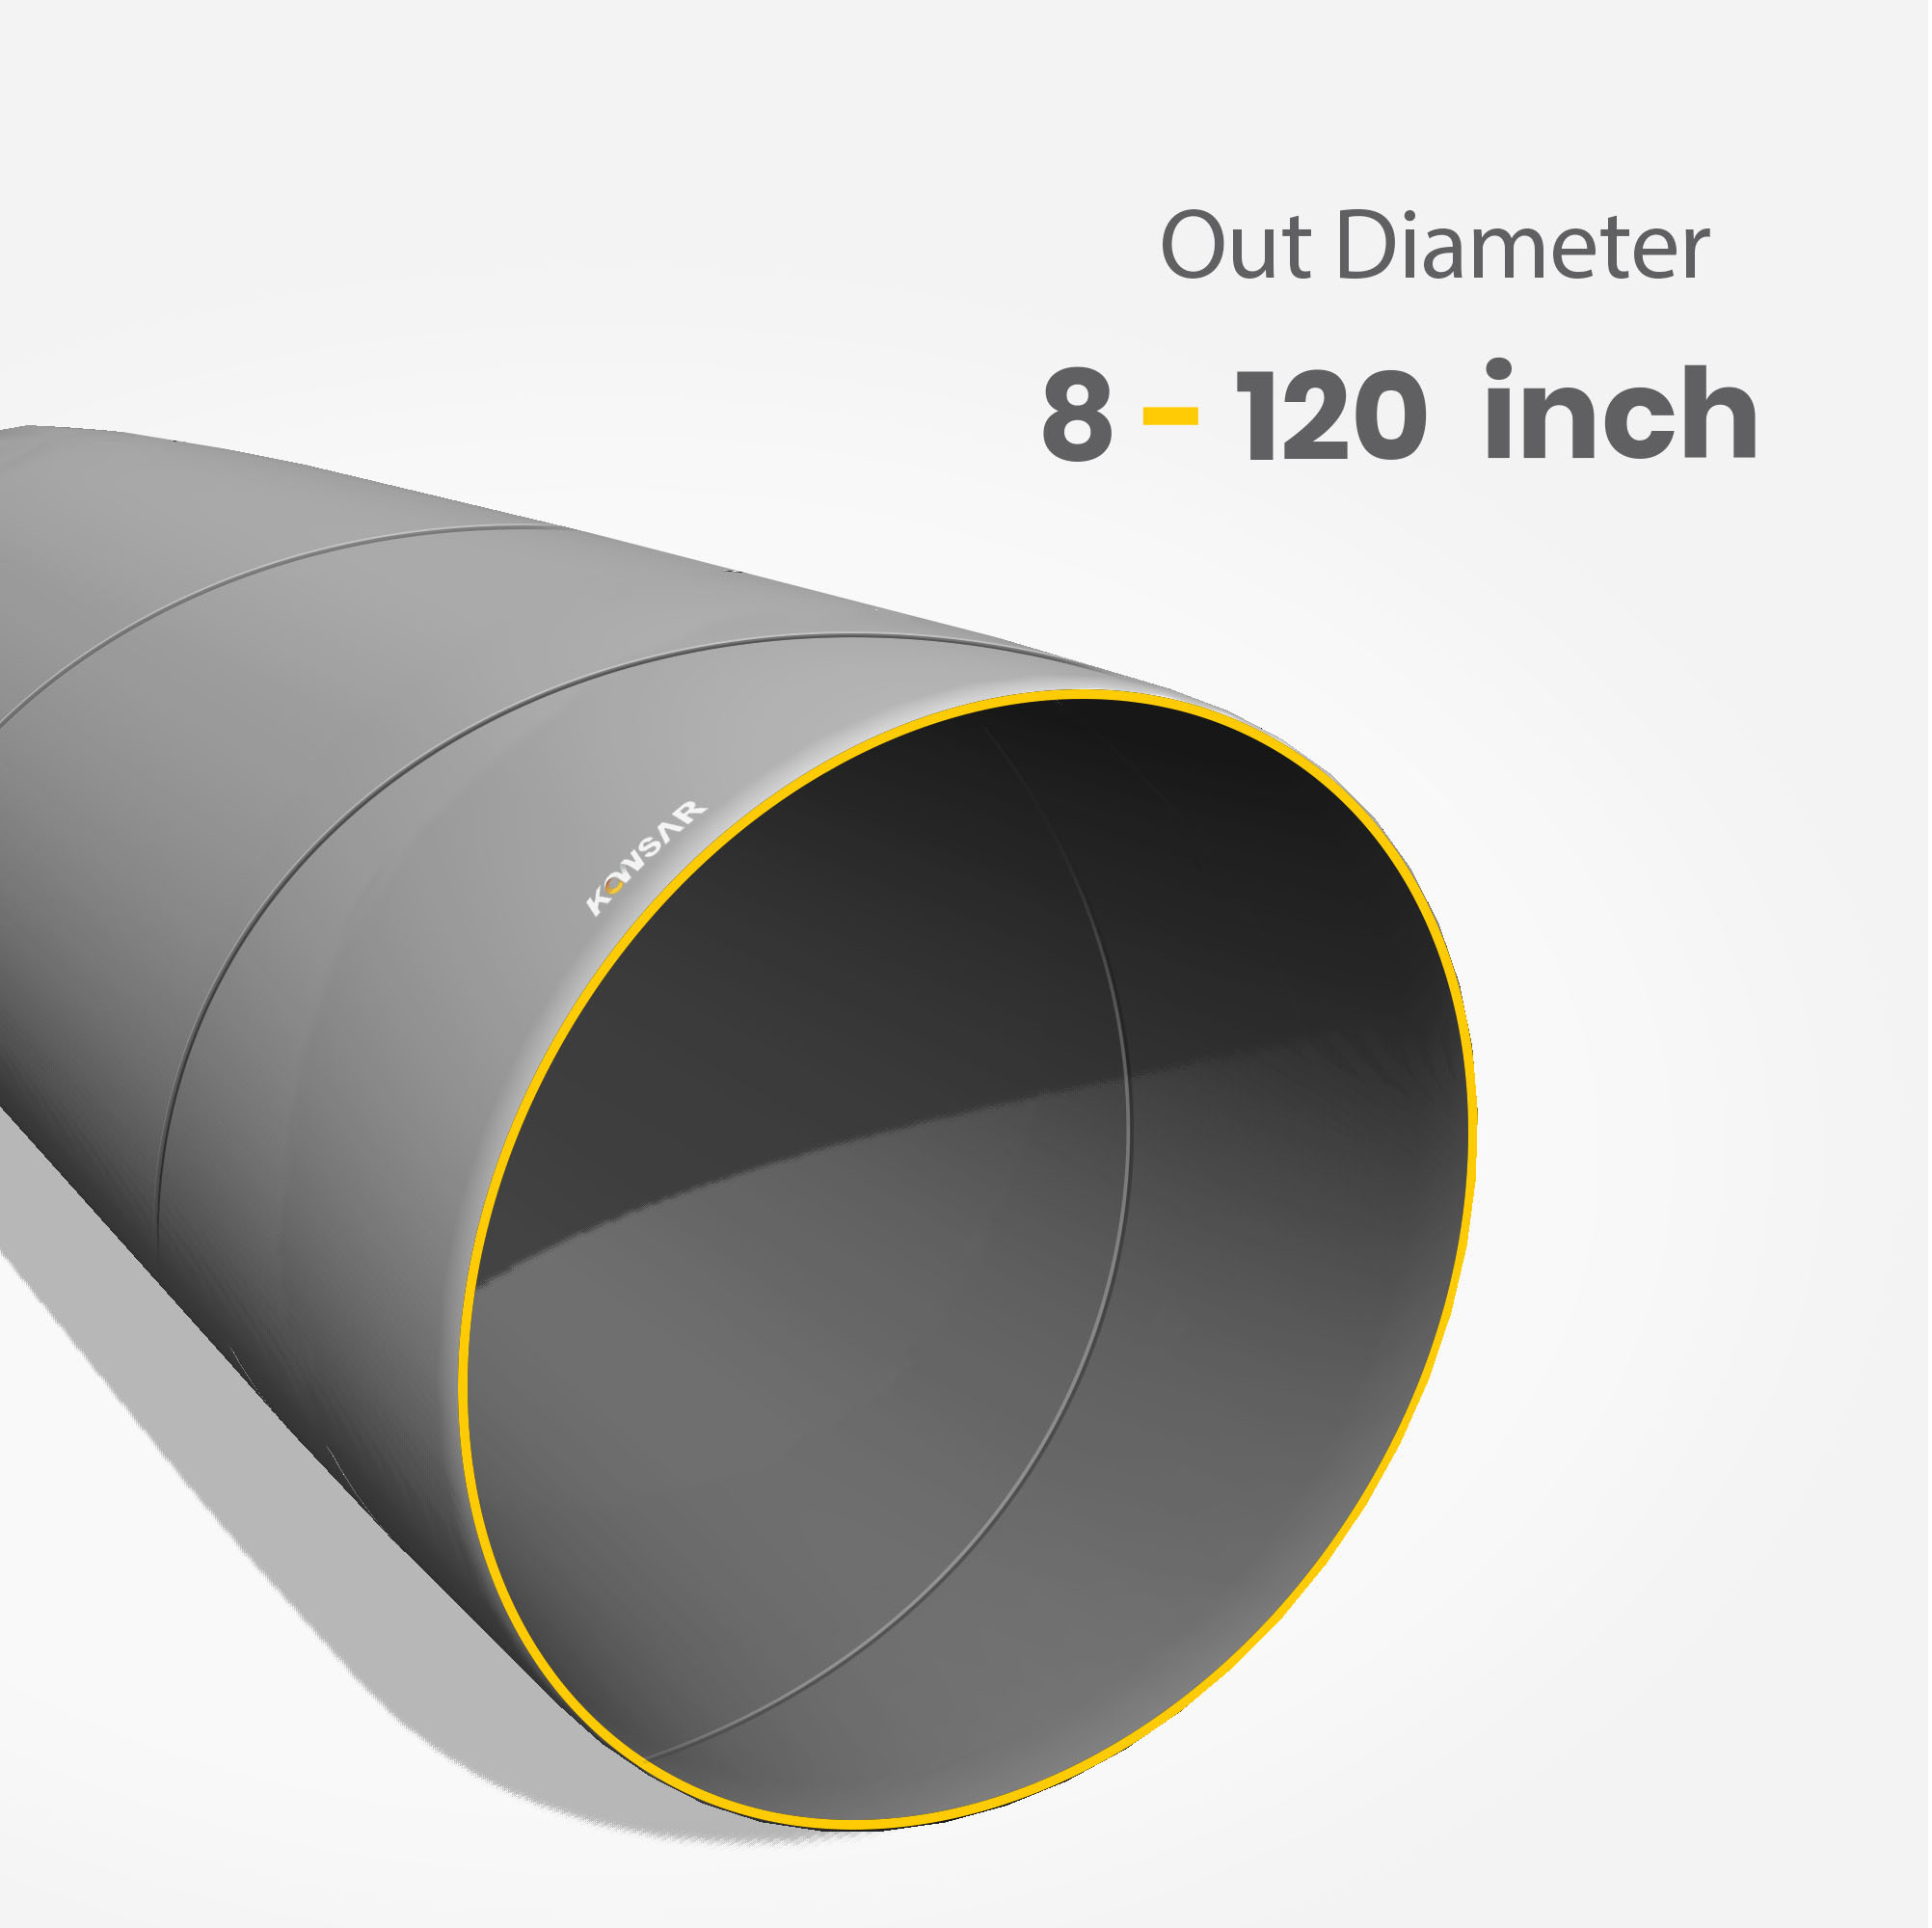 Out Diameter